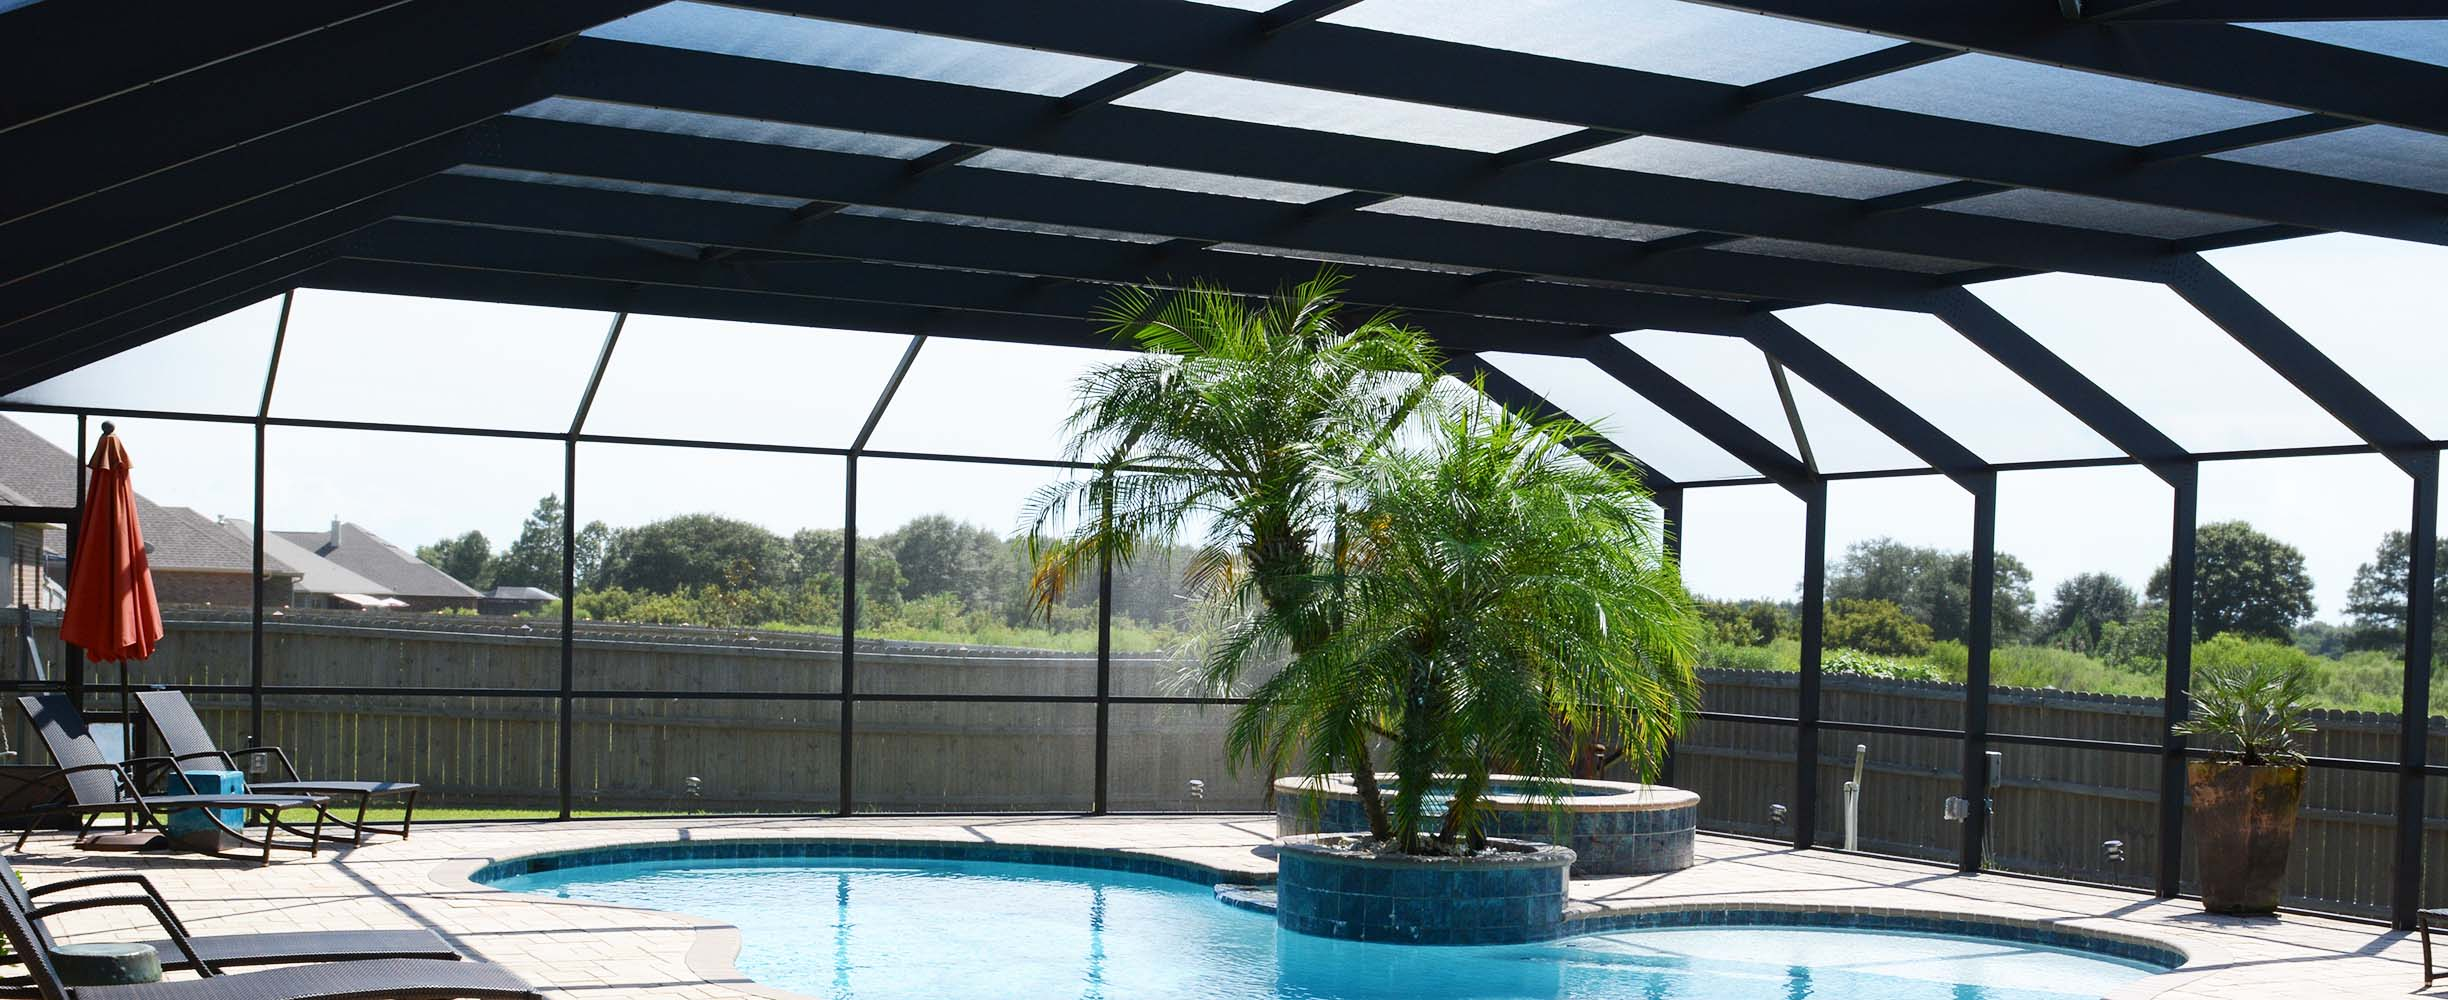 Website seo review and for Swimming pool enclosures cost